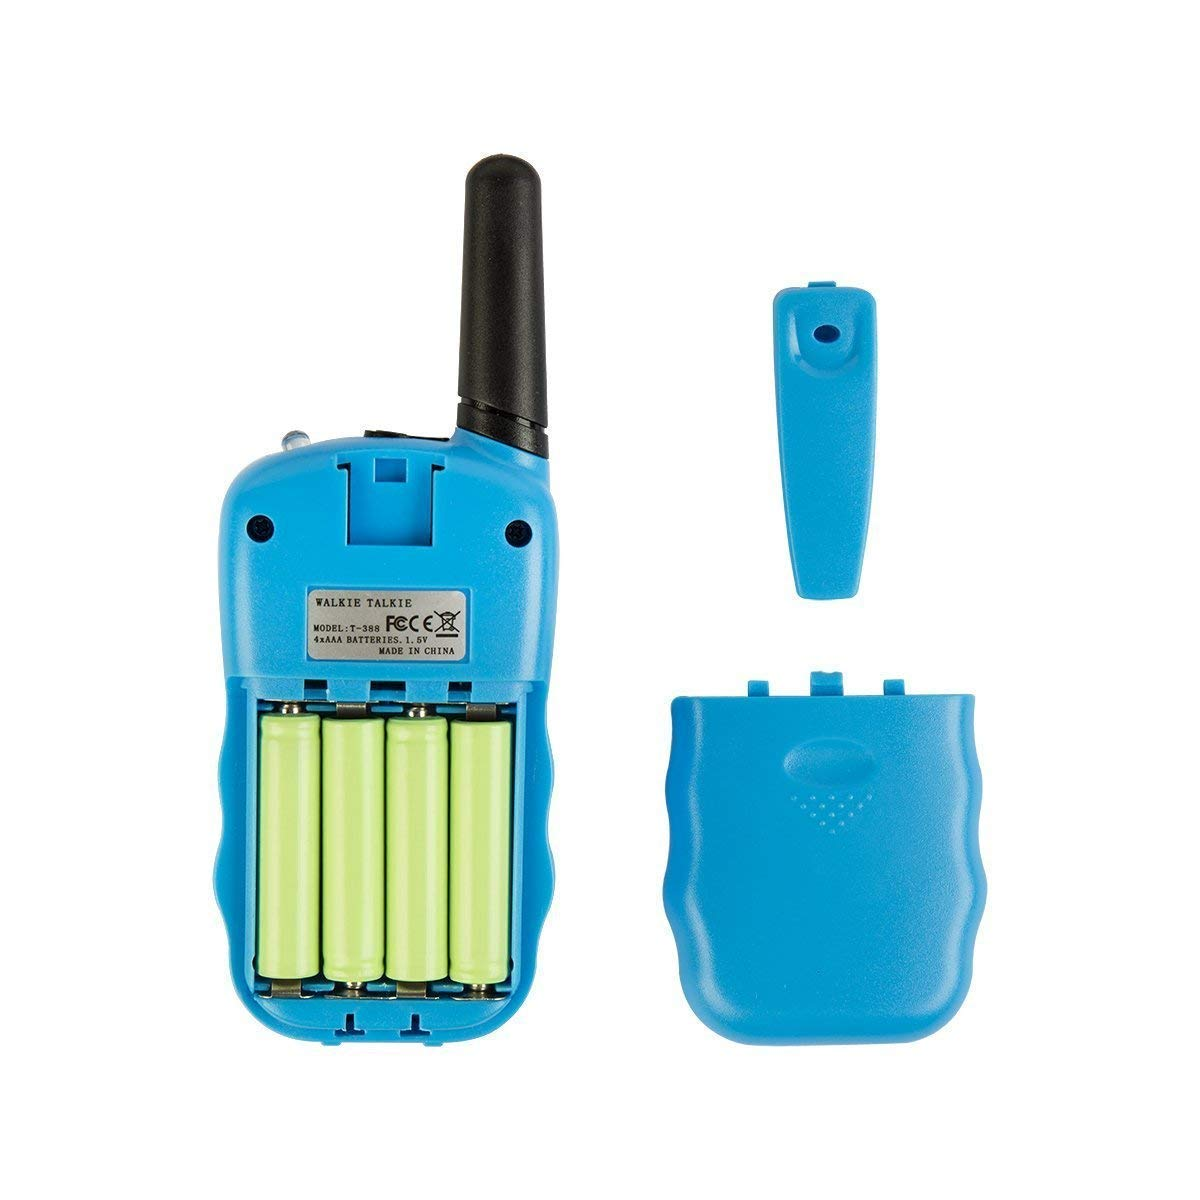 Rechargeable Walkie Talkie, Easy to use Two Way Radios, Best Gift 22 Chanels Long Range Cool Vox Walky Talky for Camping Hiking Fishing Toys with Batteries and Charger (Blue) by GZL (Image #4)